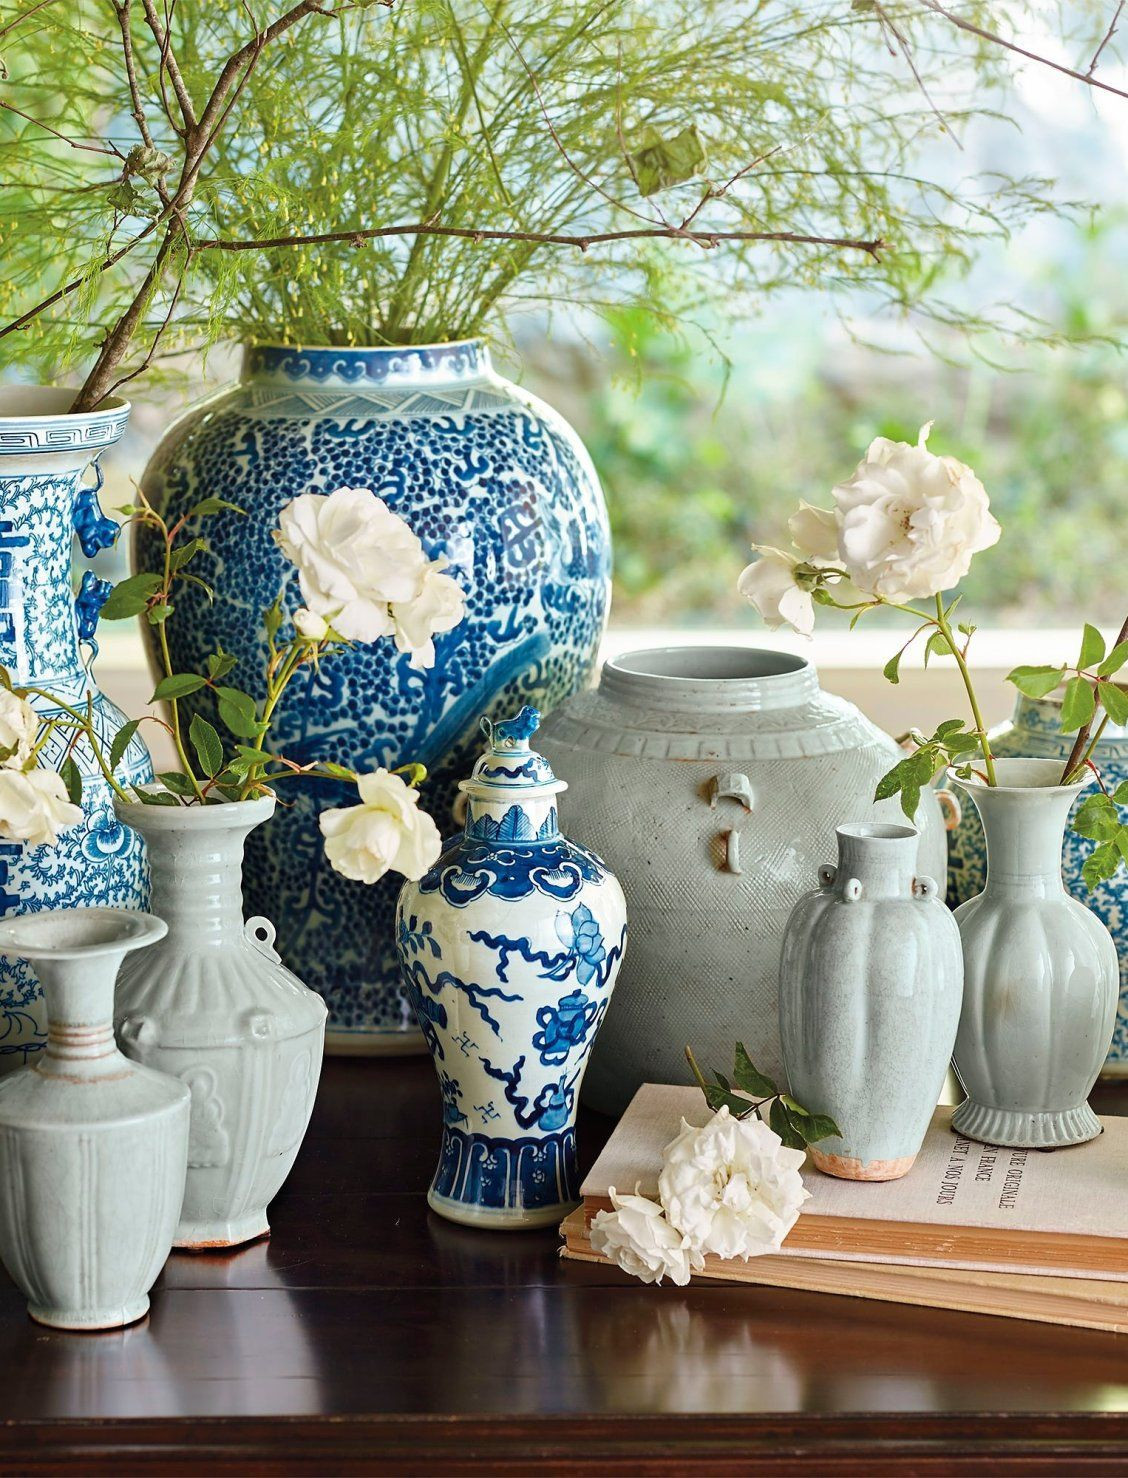 oriental accent vase of skilled artisans employ heirloom techniques to wheel throw fire and regarding skilled artisans employ heirloom techniques to wheel throw fire and celadon glaze yielding